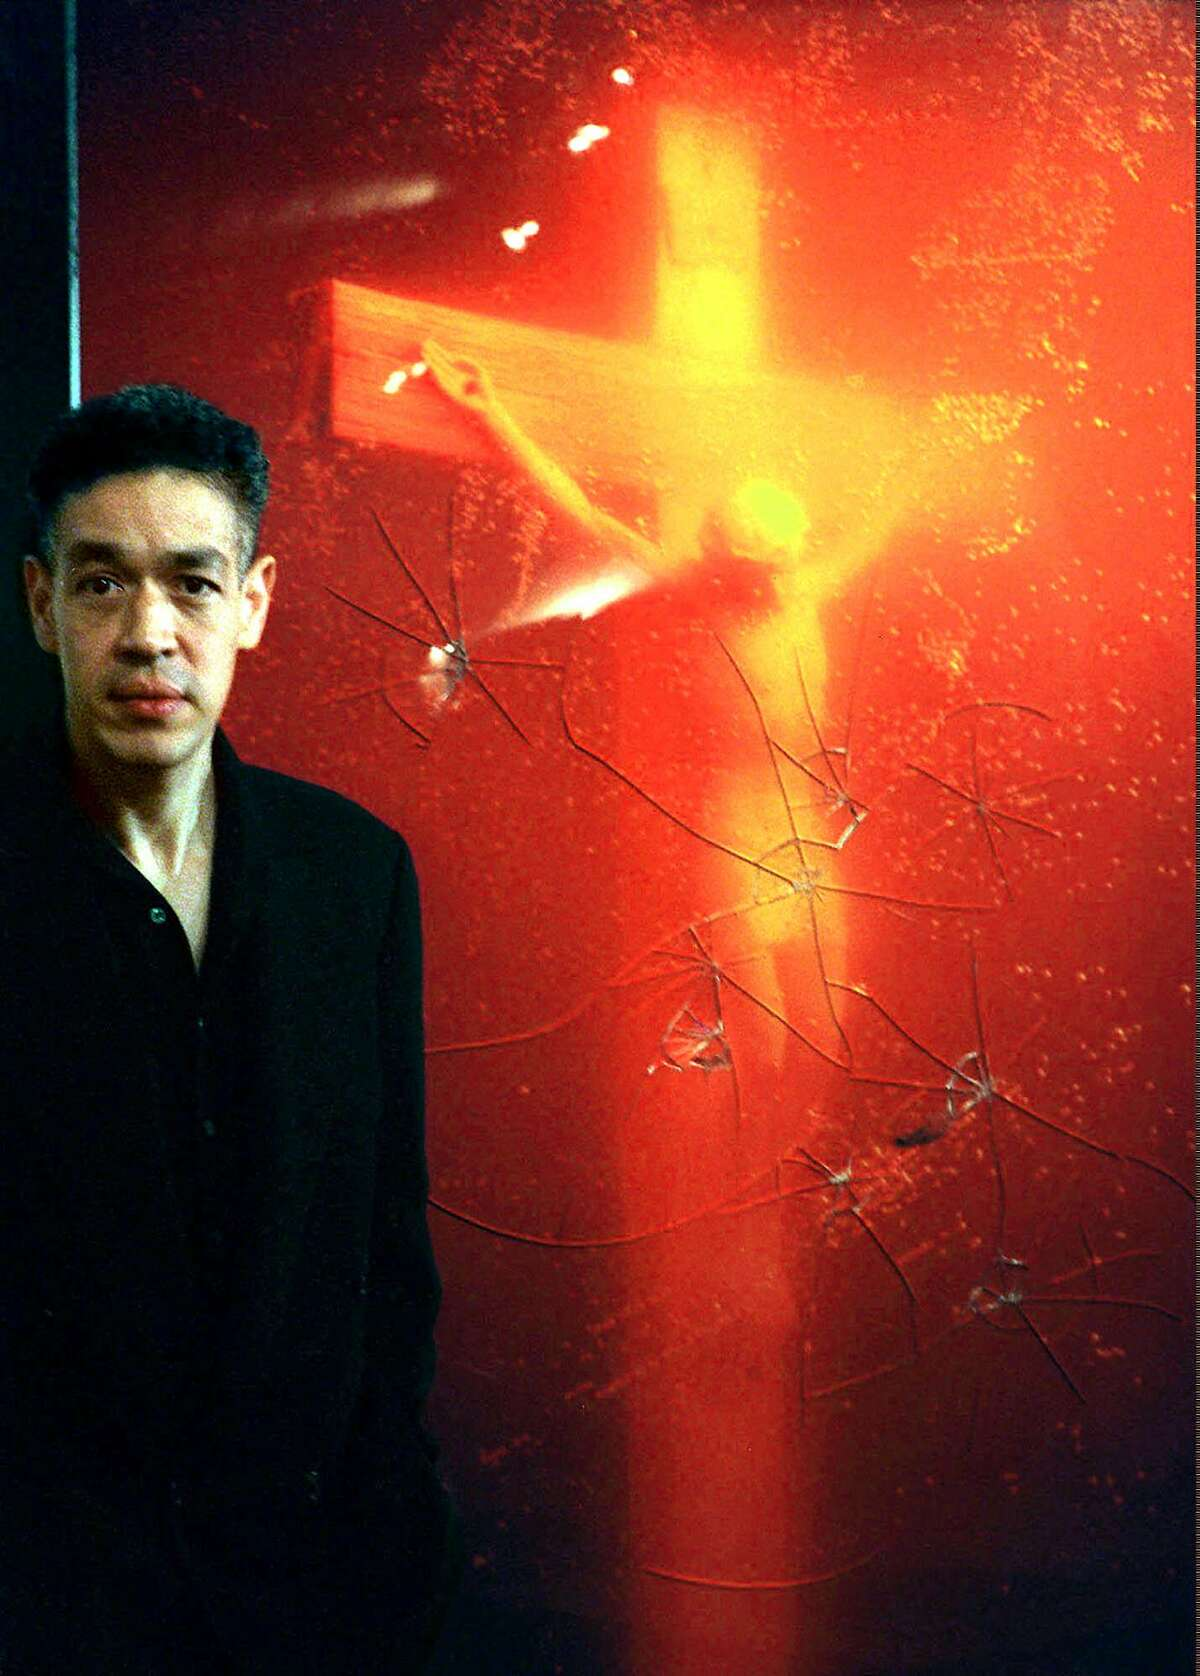 American photographer Andres Serrano's artwork 'Piss Christ,' which depicted a crucifix immersed in urine, saw his piece vandalized by Catholic activists. Source: Religion News Service